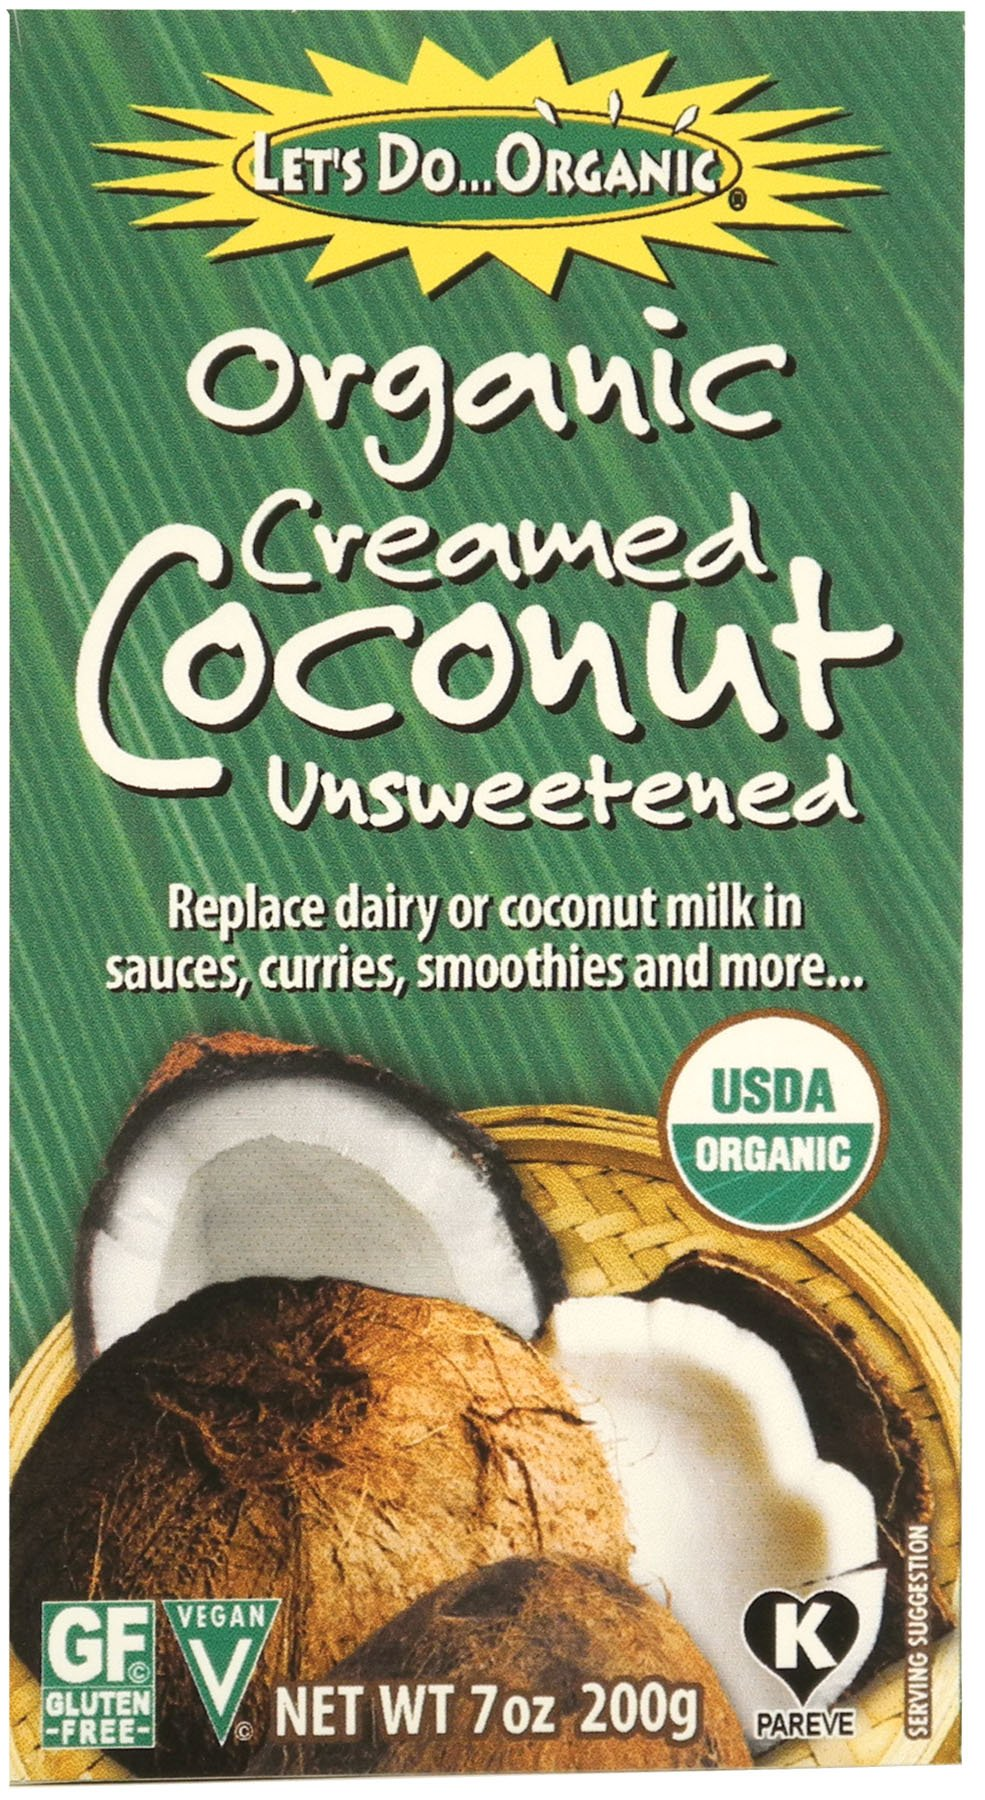 'Let's Do Organic Creamed Coconut, 7-Ounce Boxes (Pack of 6)' from the web at 'https://images-na.ssl-images-amazon.com/images/I/817eWWvXPzL.jpg'